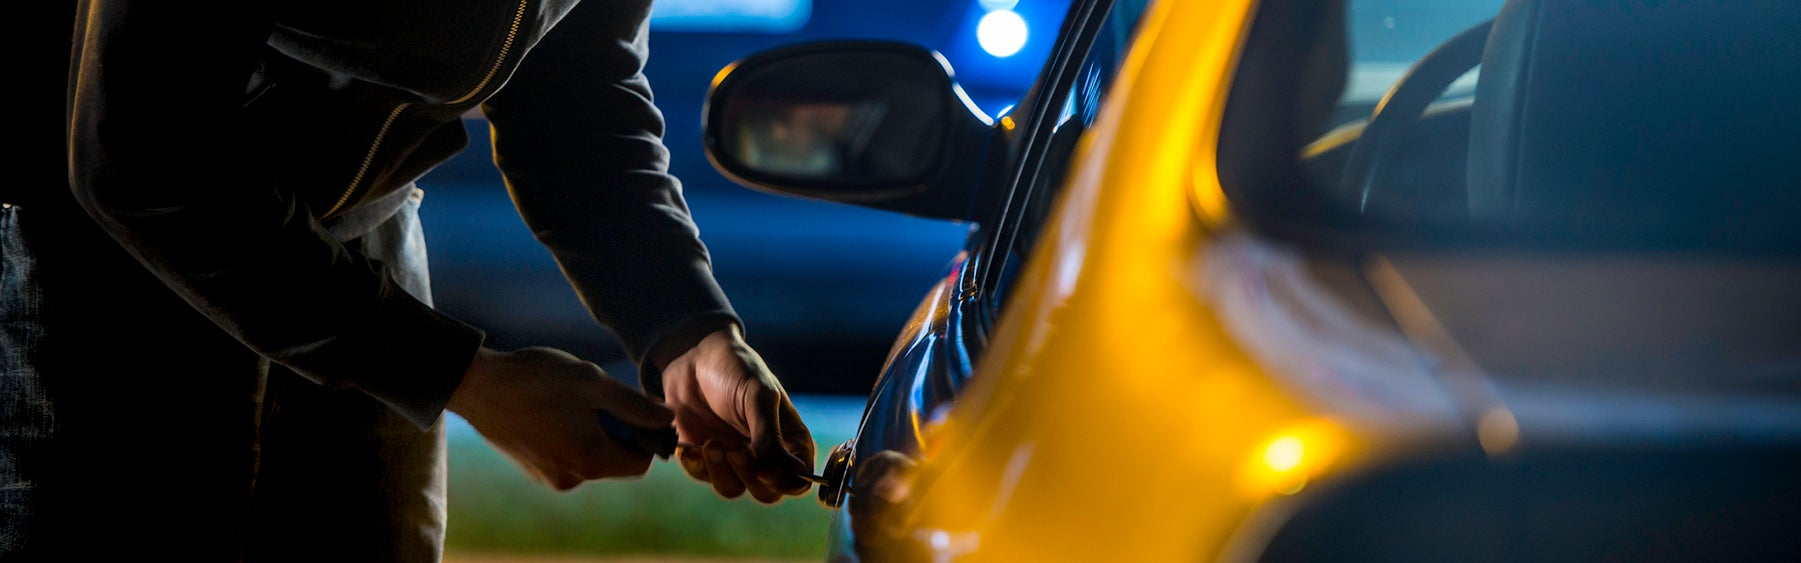 The Best Devices, Tools & Advice For Preventing Vehicle Theft